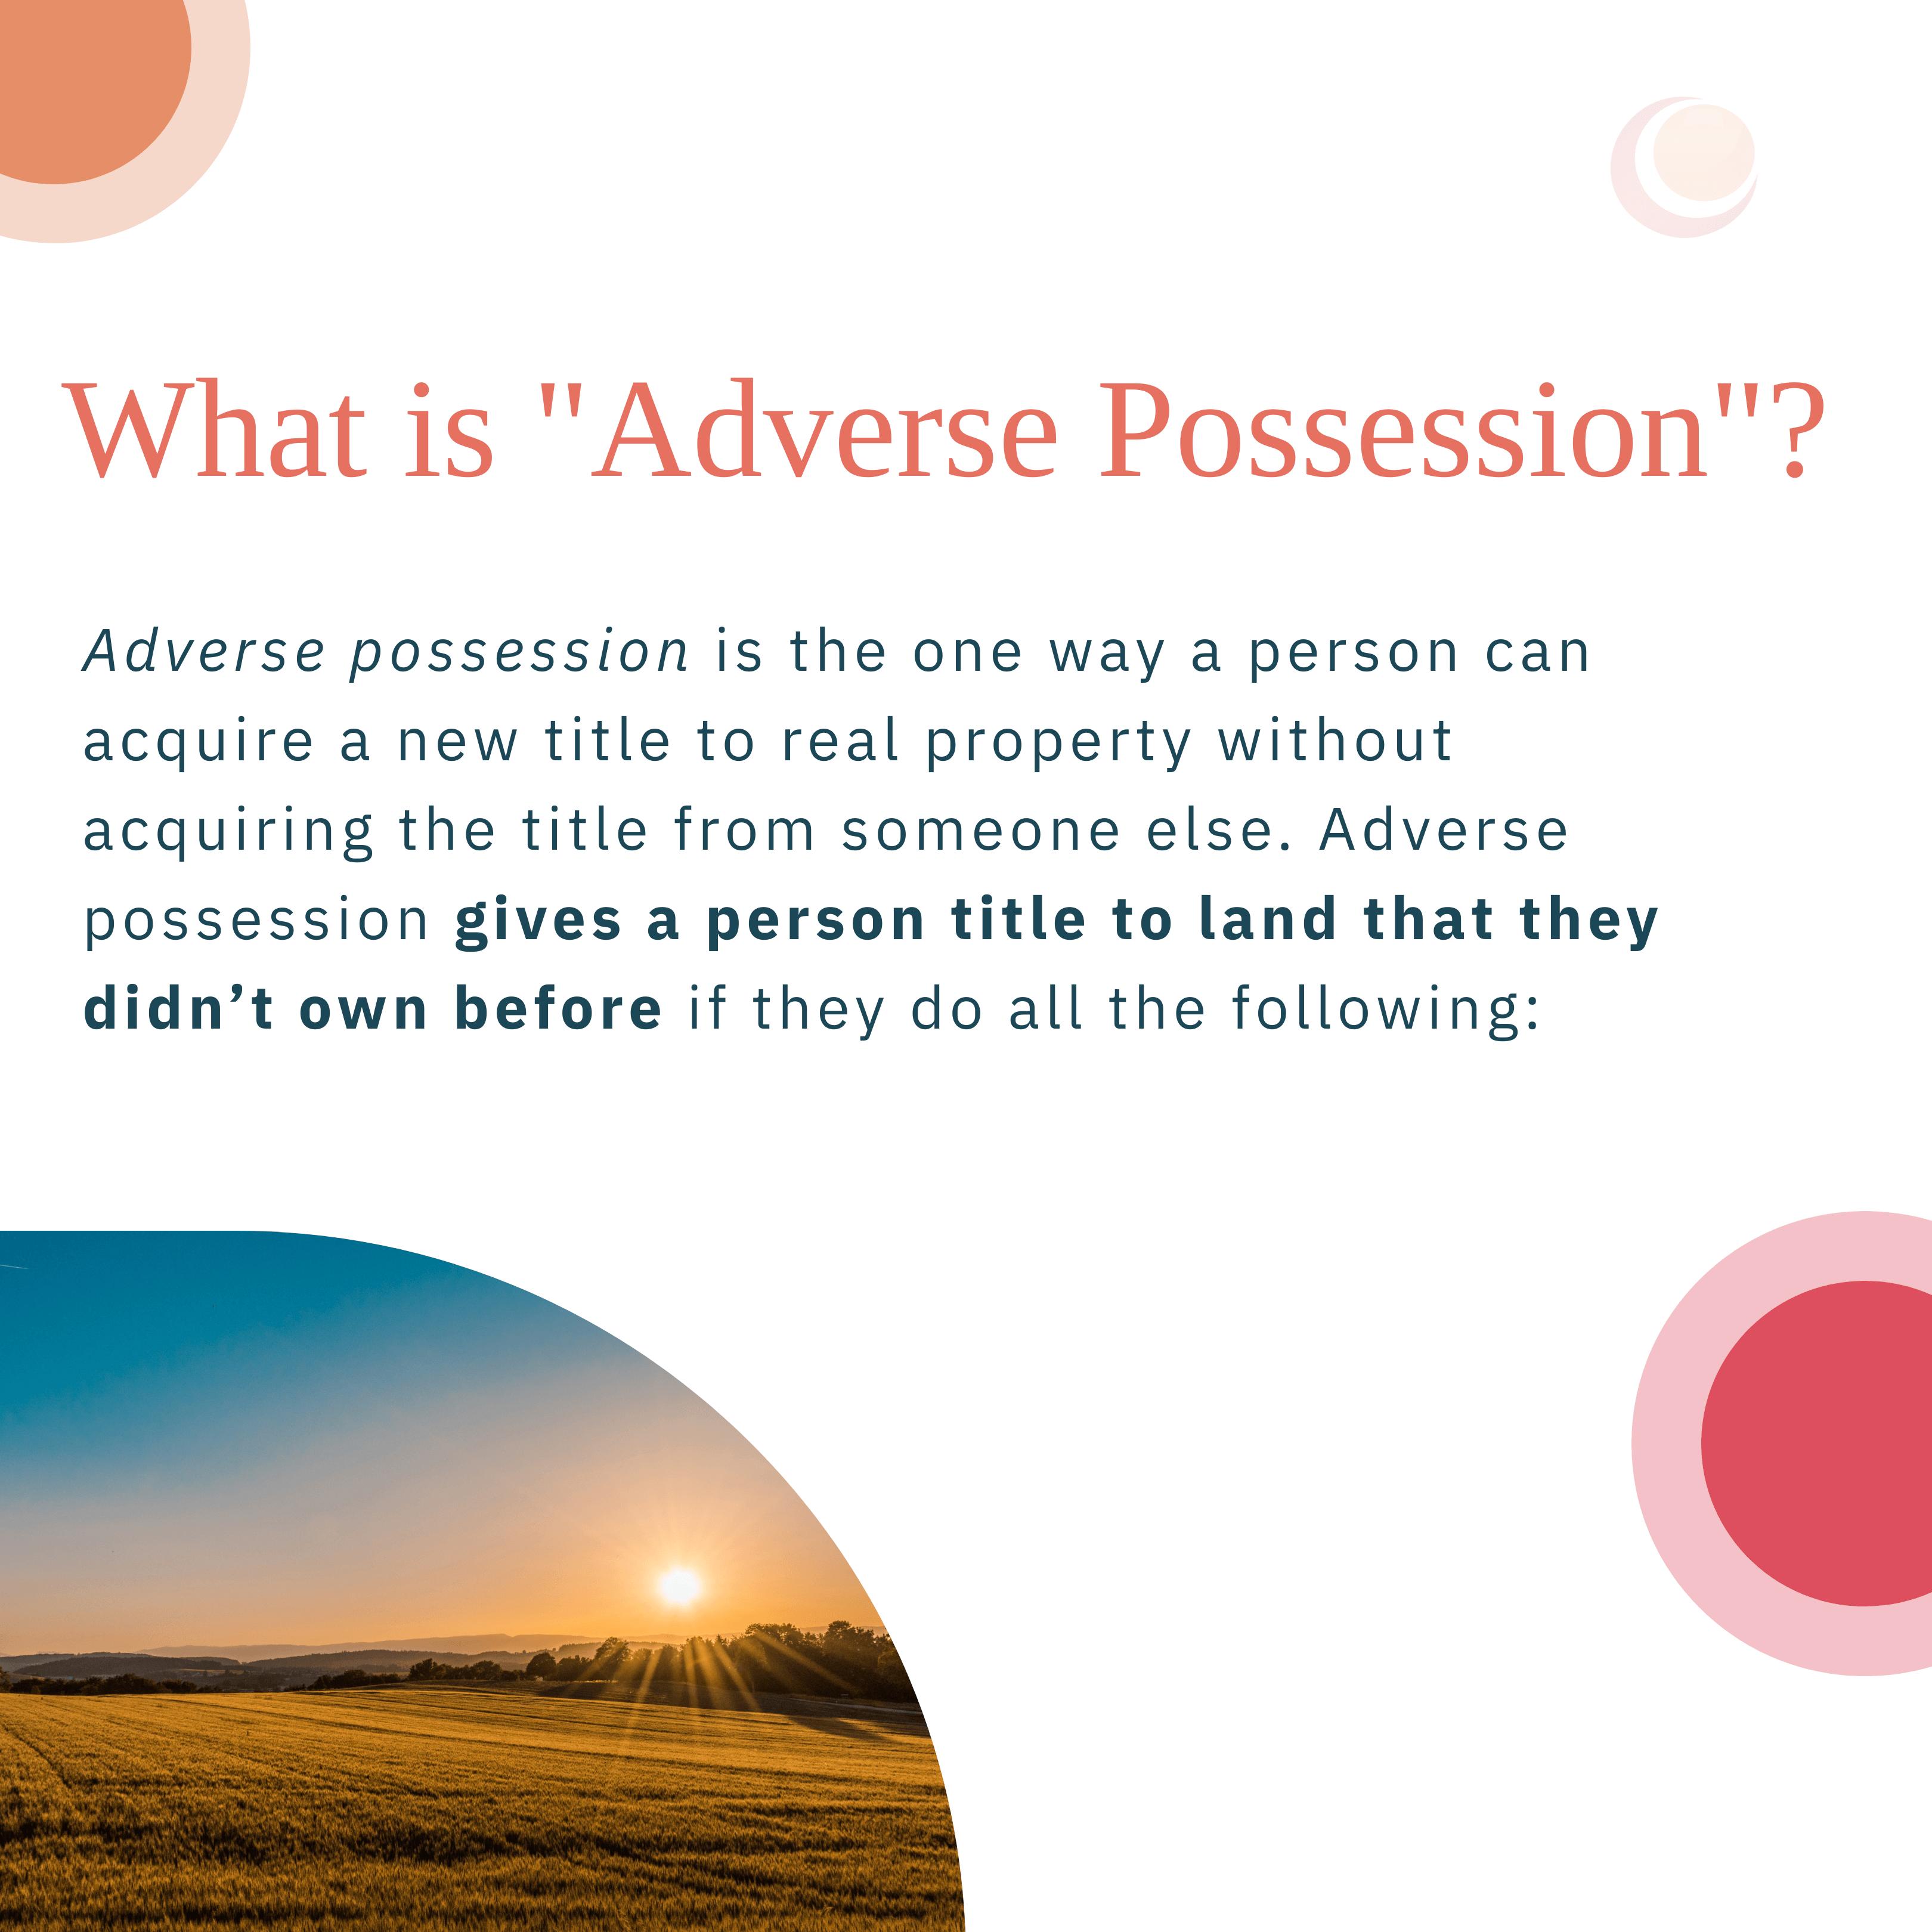 Adverse Possession, how to acquire a new title to a real property without acquiring the title from someone else